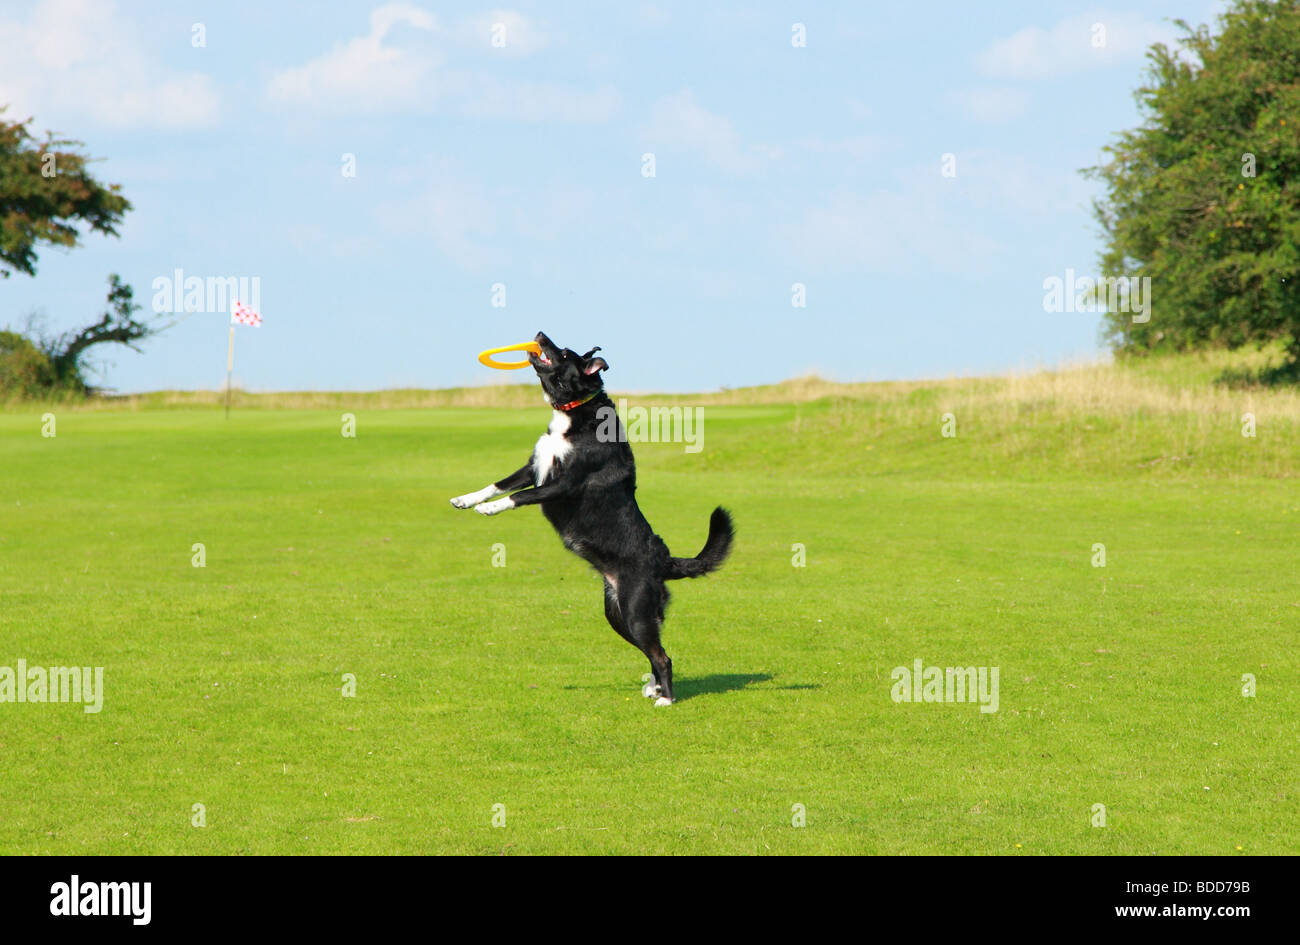 Leaping dog catching a Frisbee - Stock Image